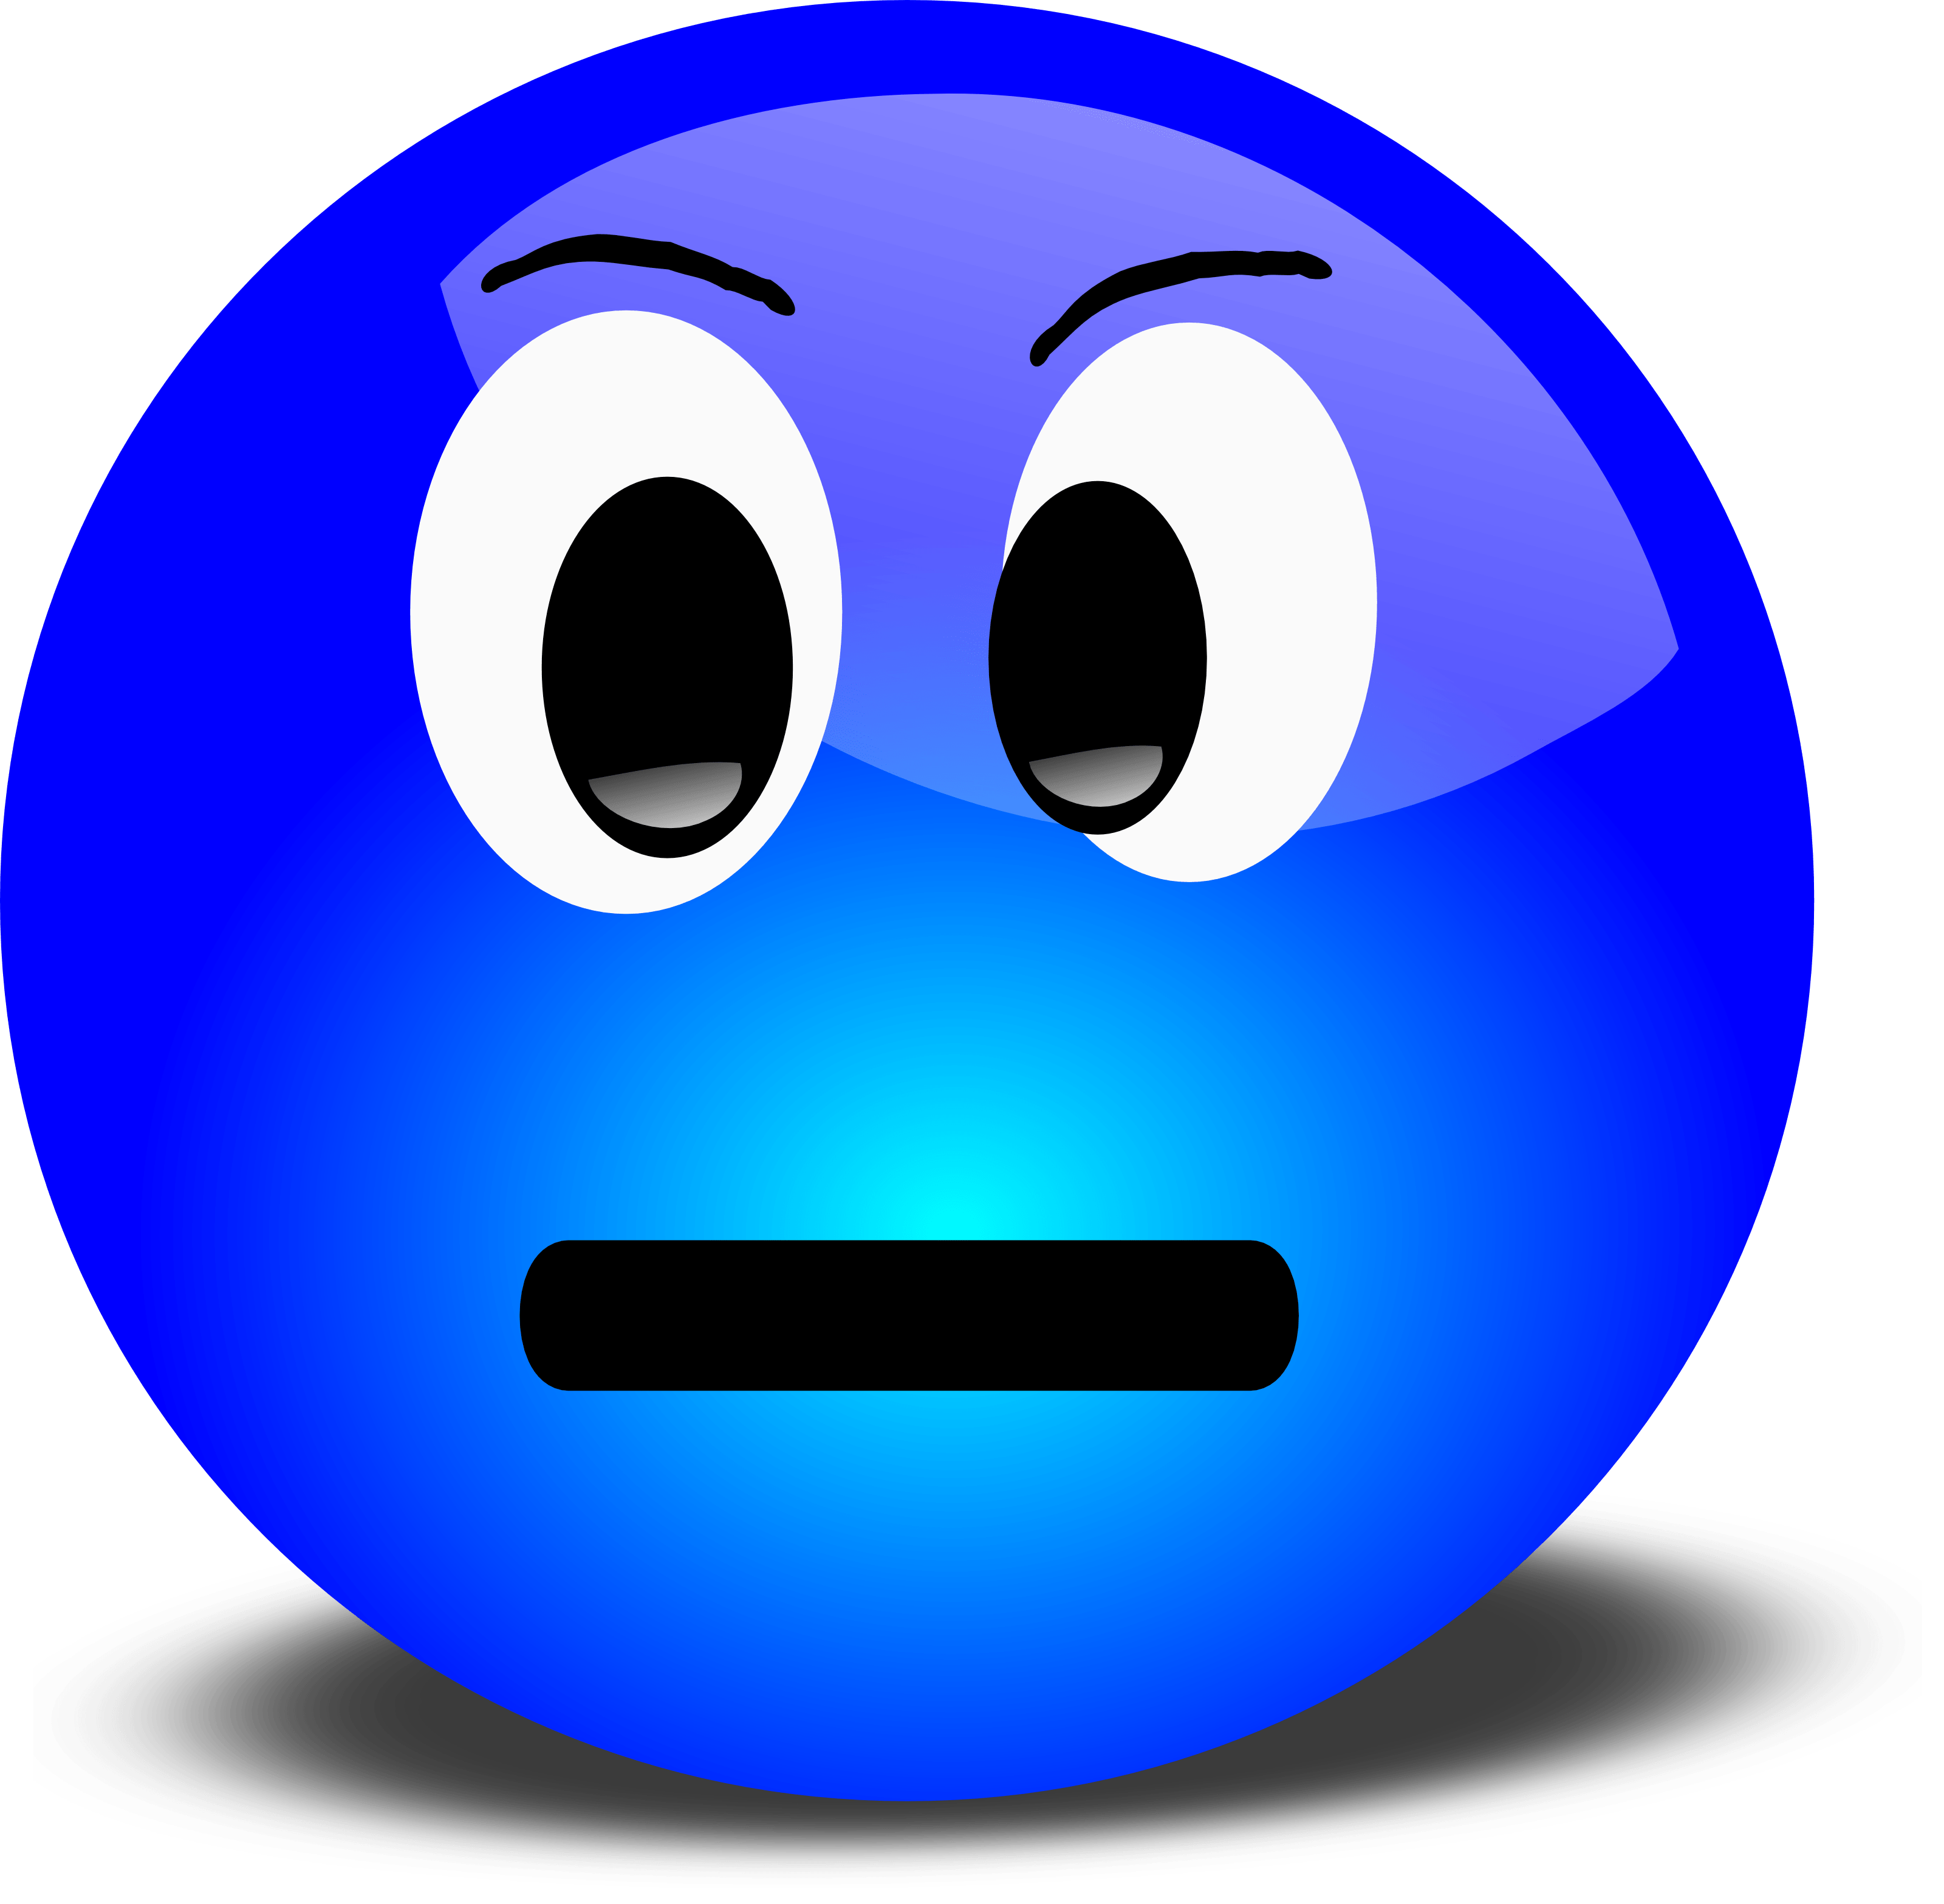 3200x3134 Cliparts Mean Face 193541